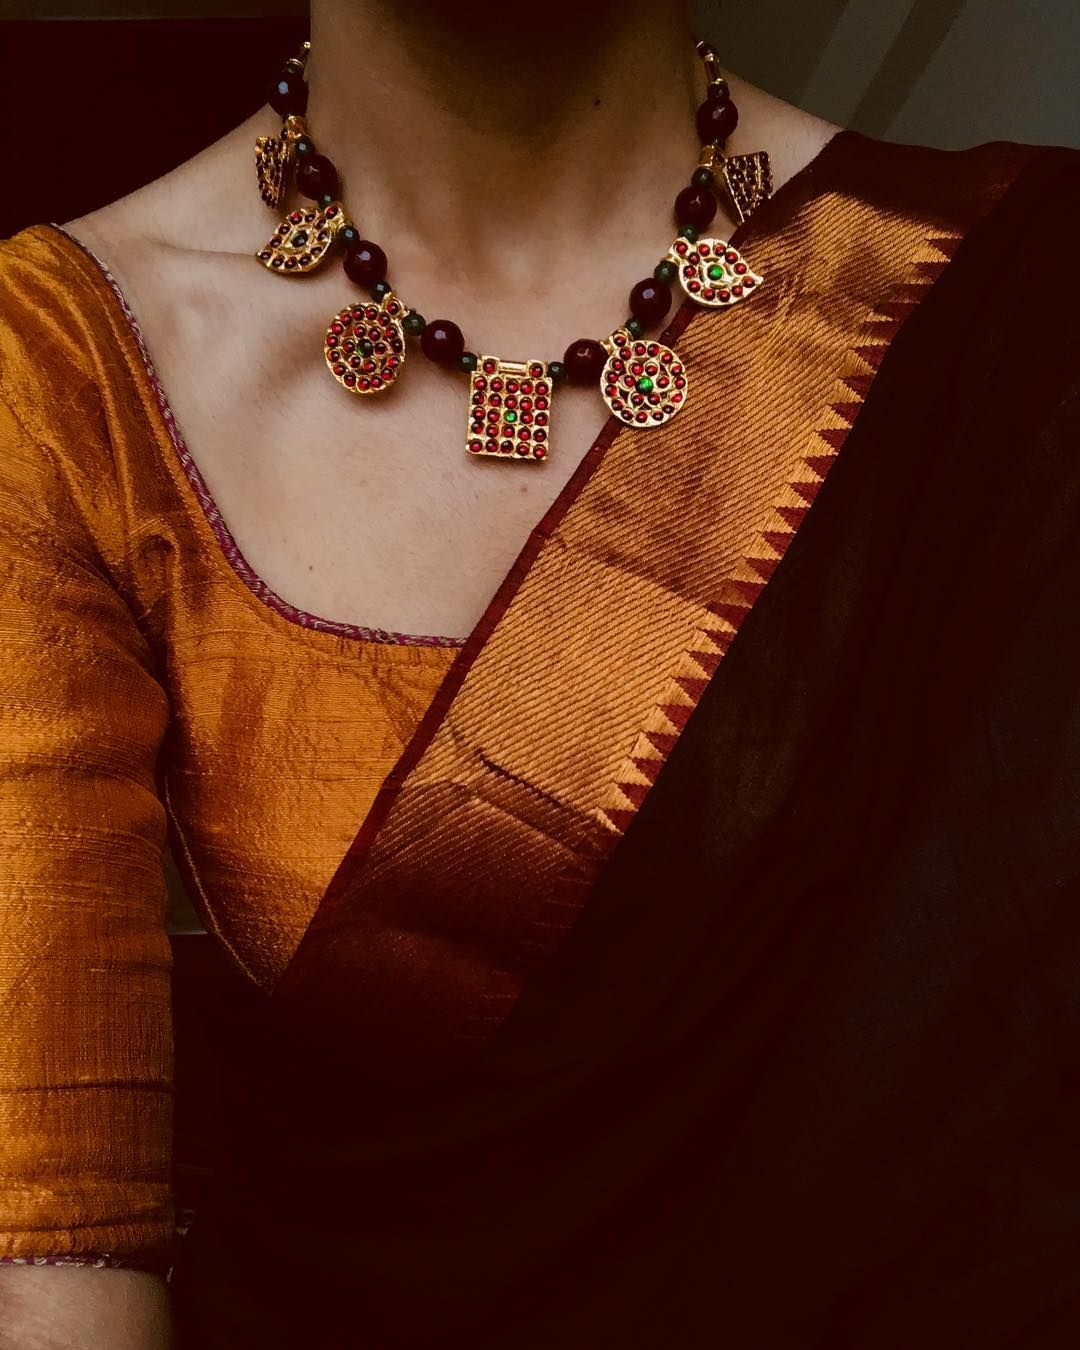 c5f9adfd94738f The Best Necklace Designs You Can Wear With Sarees